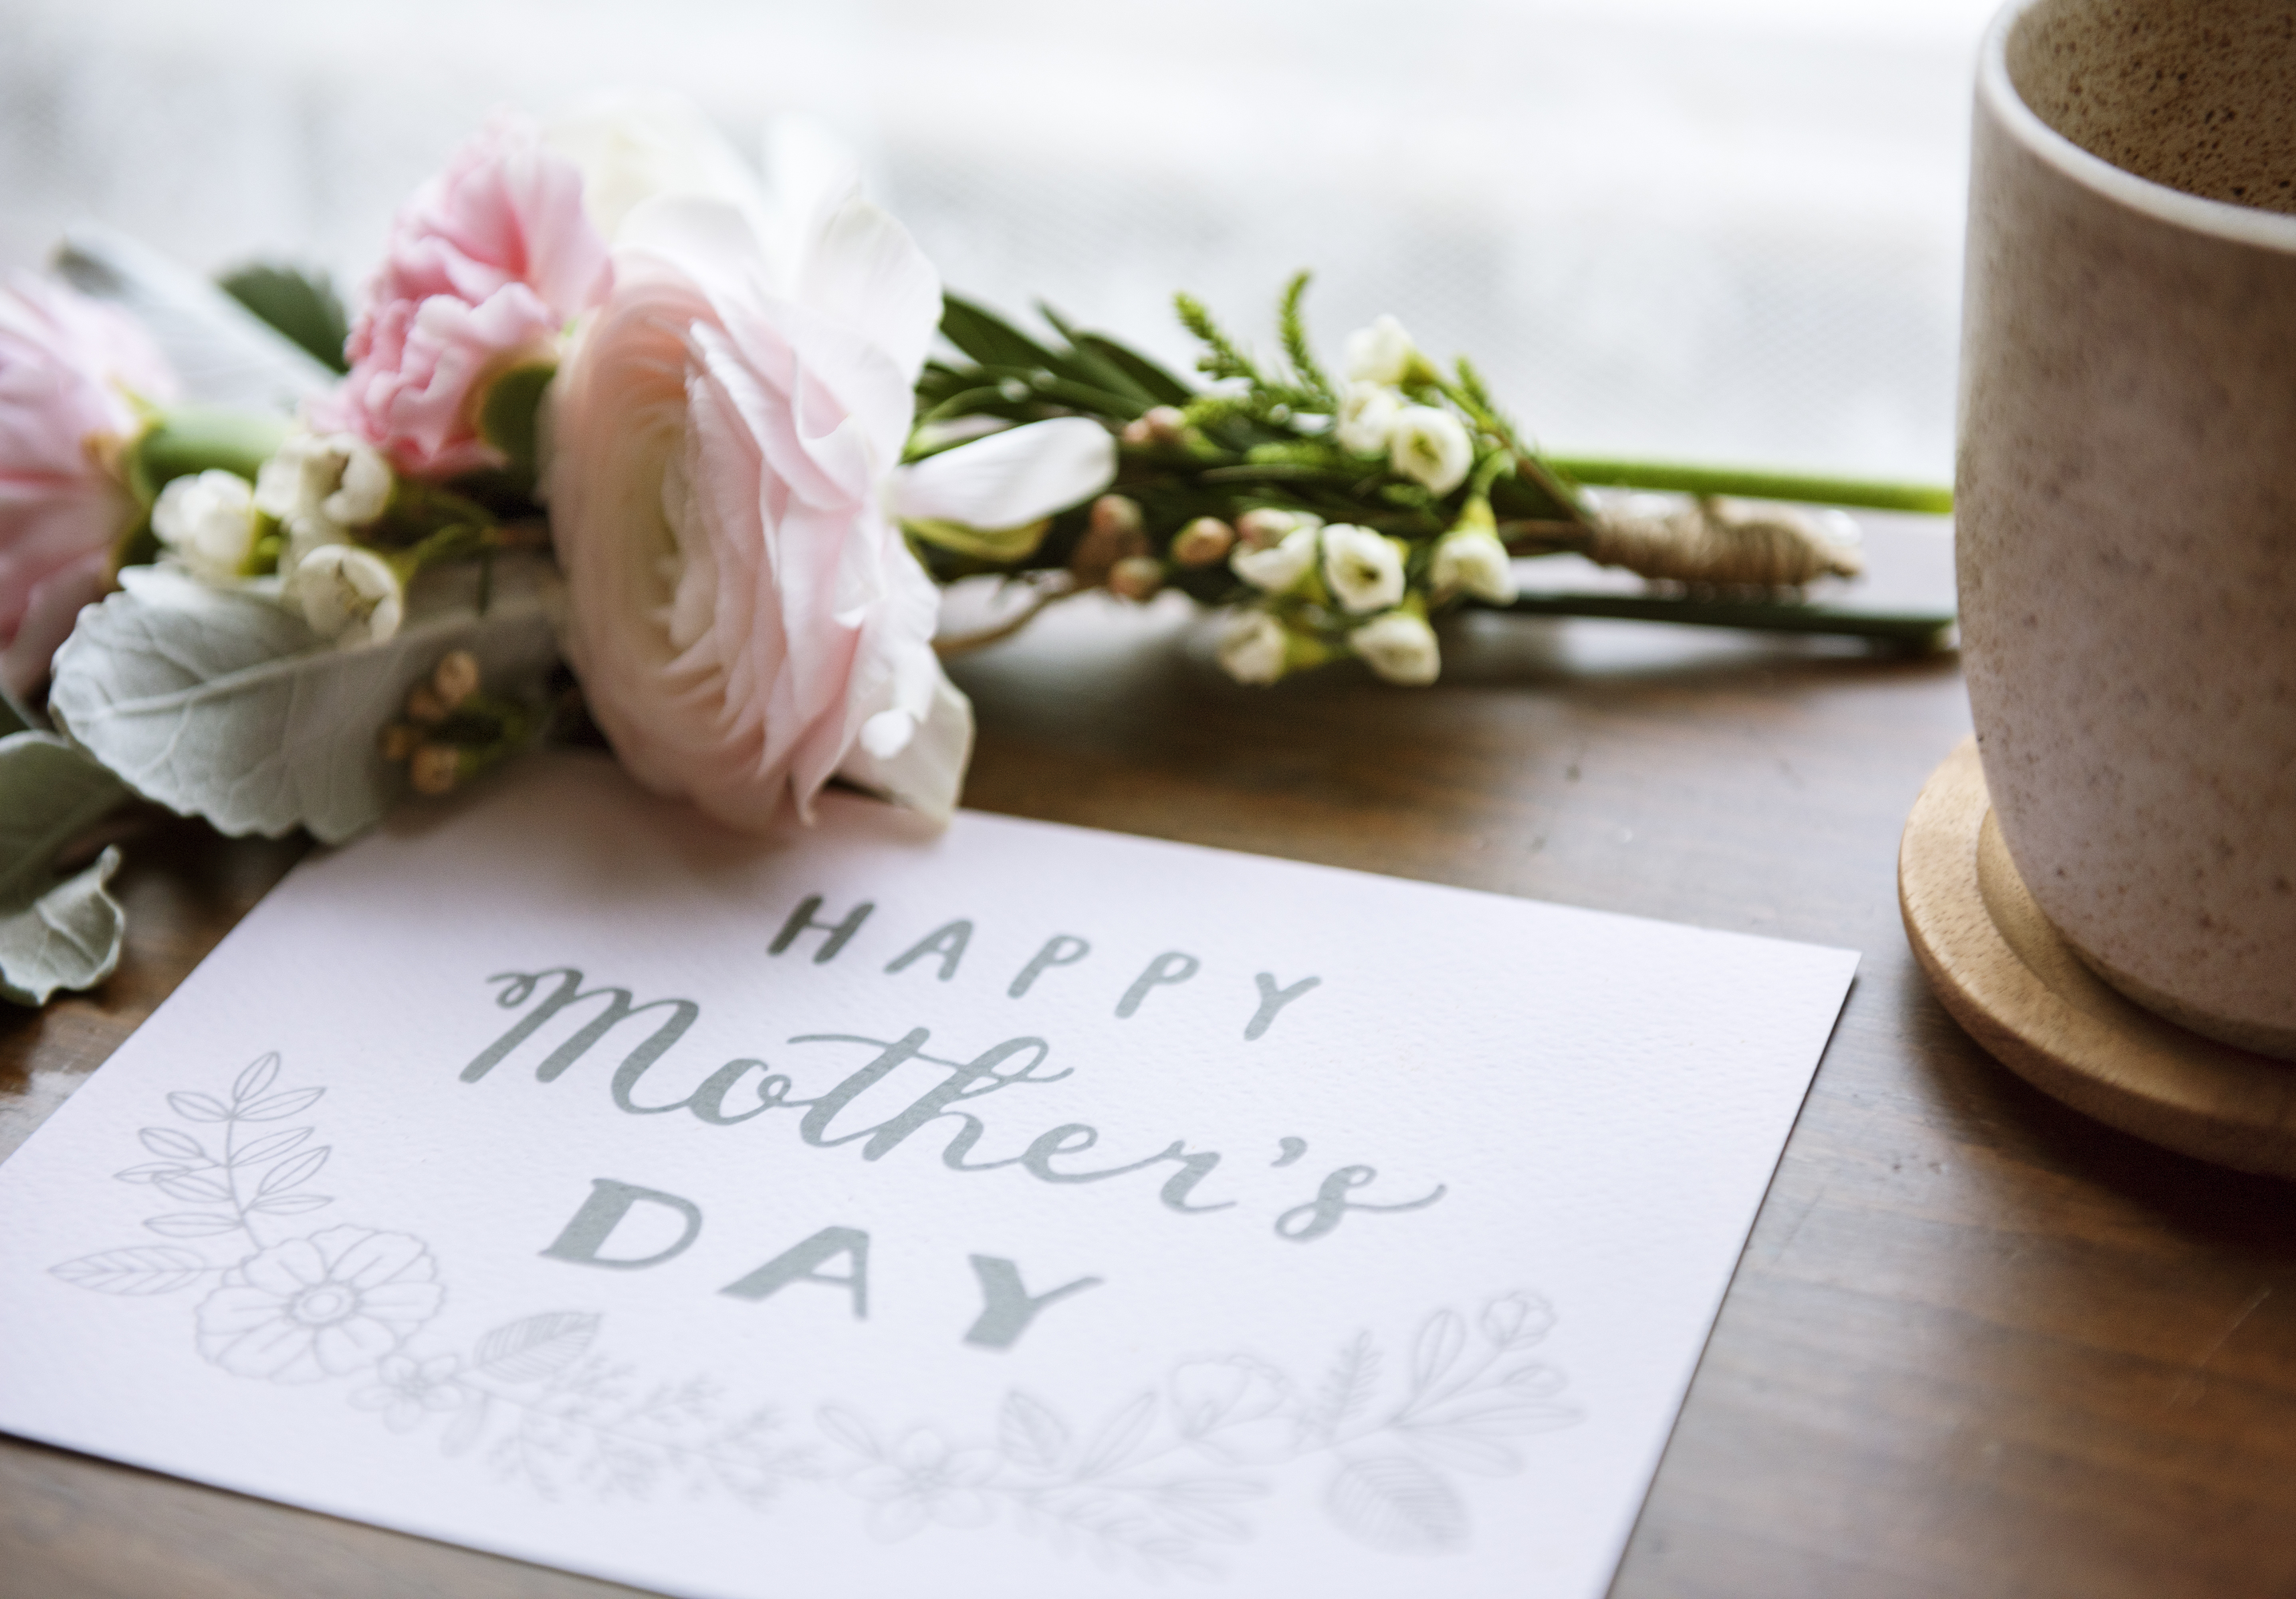 6 Ways To Celebrate Mother's Day